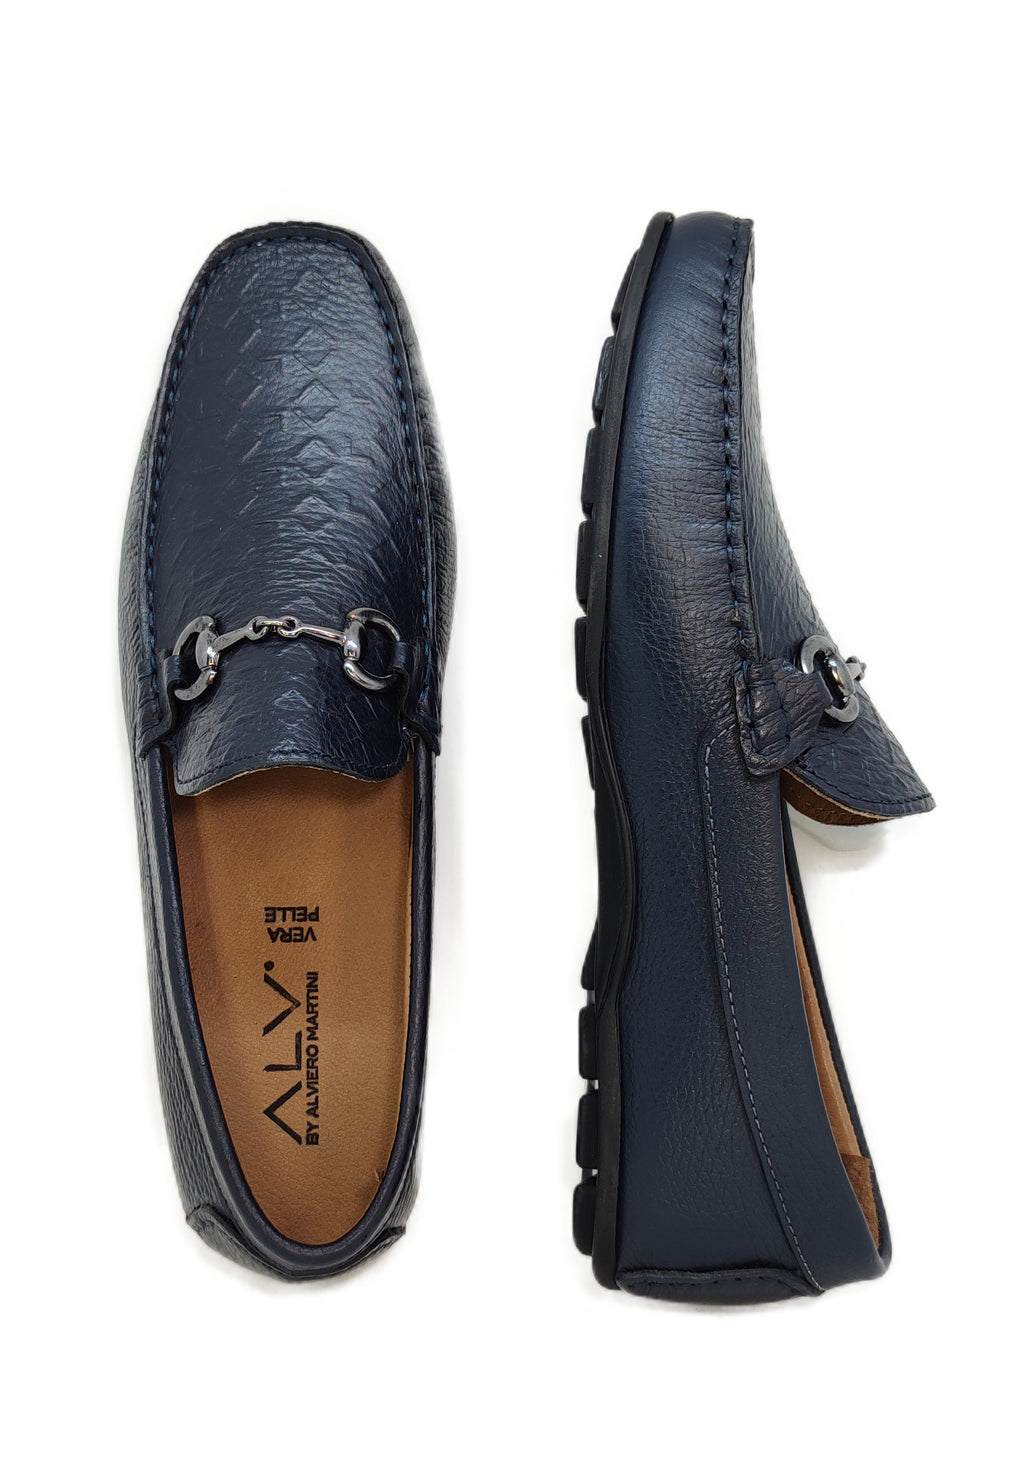 ALV206 BLUE - Mocassino uomo